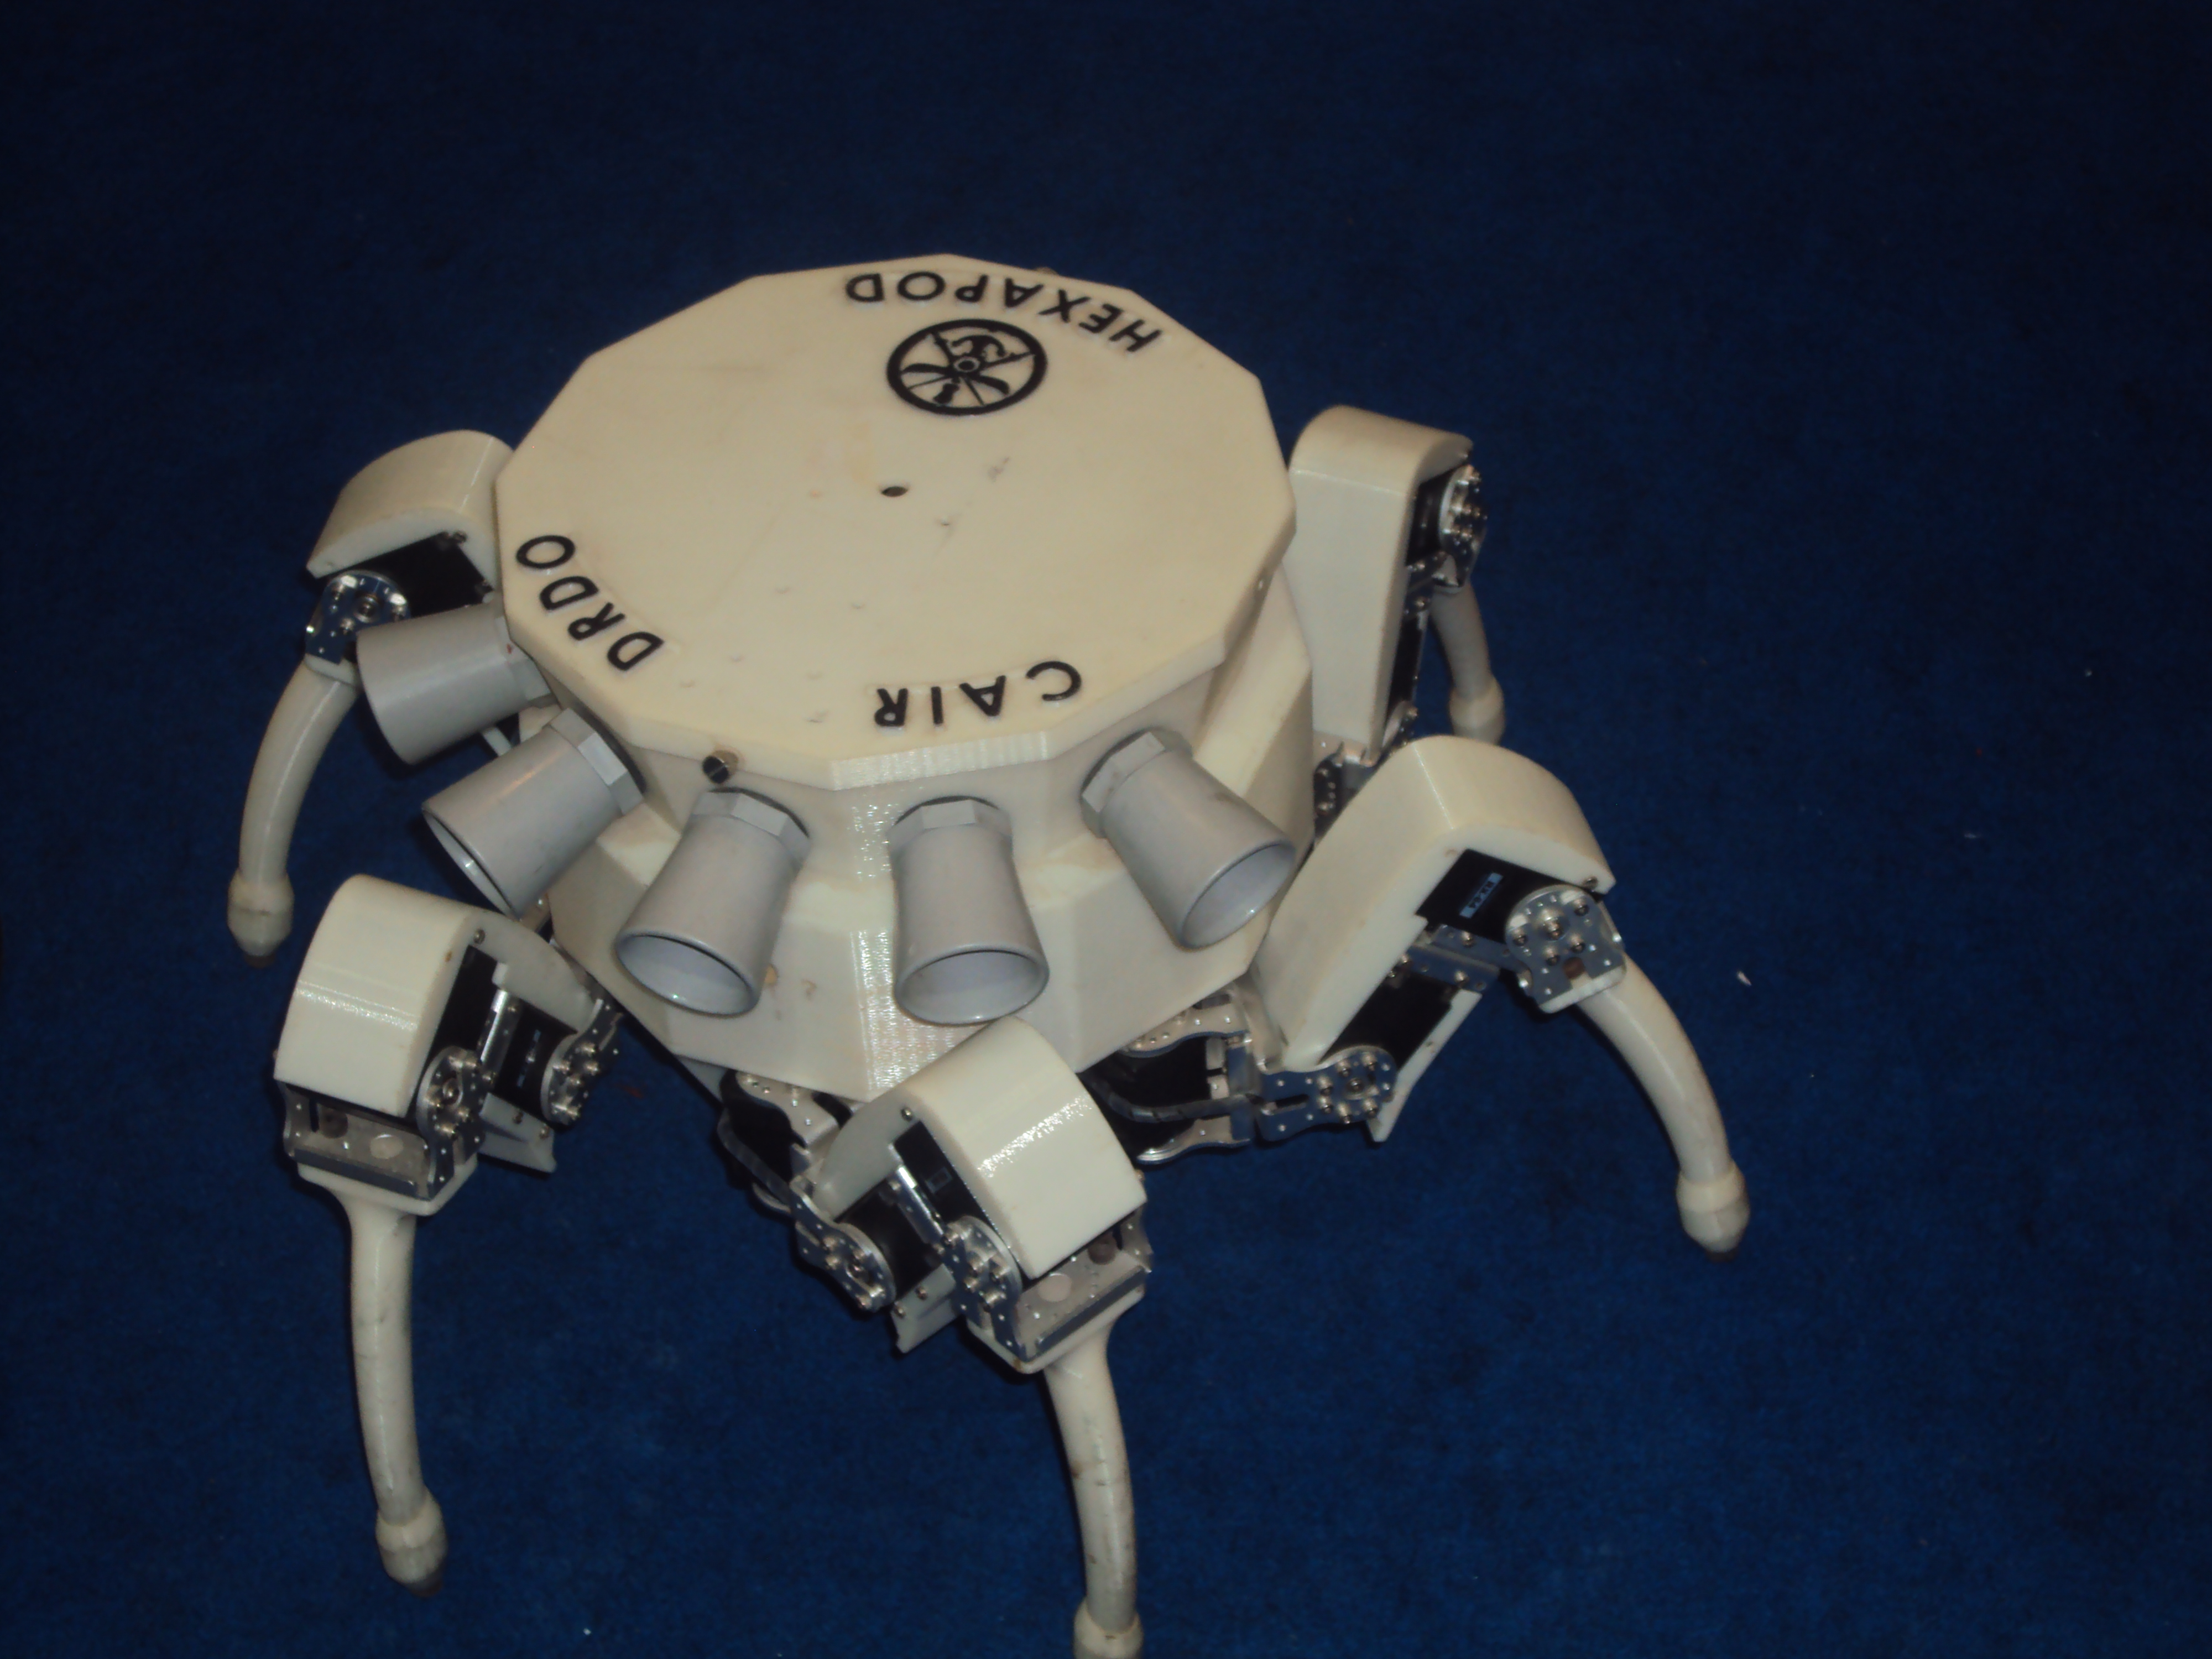 Hexapod is a robot with six legs, each with three degrees of freedom. This enables omni-directional motion. It can walk on rough terrain and has ultrasonic sensors for obstacle avoidance.